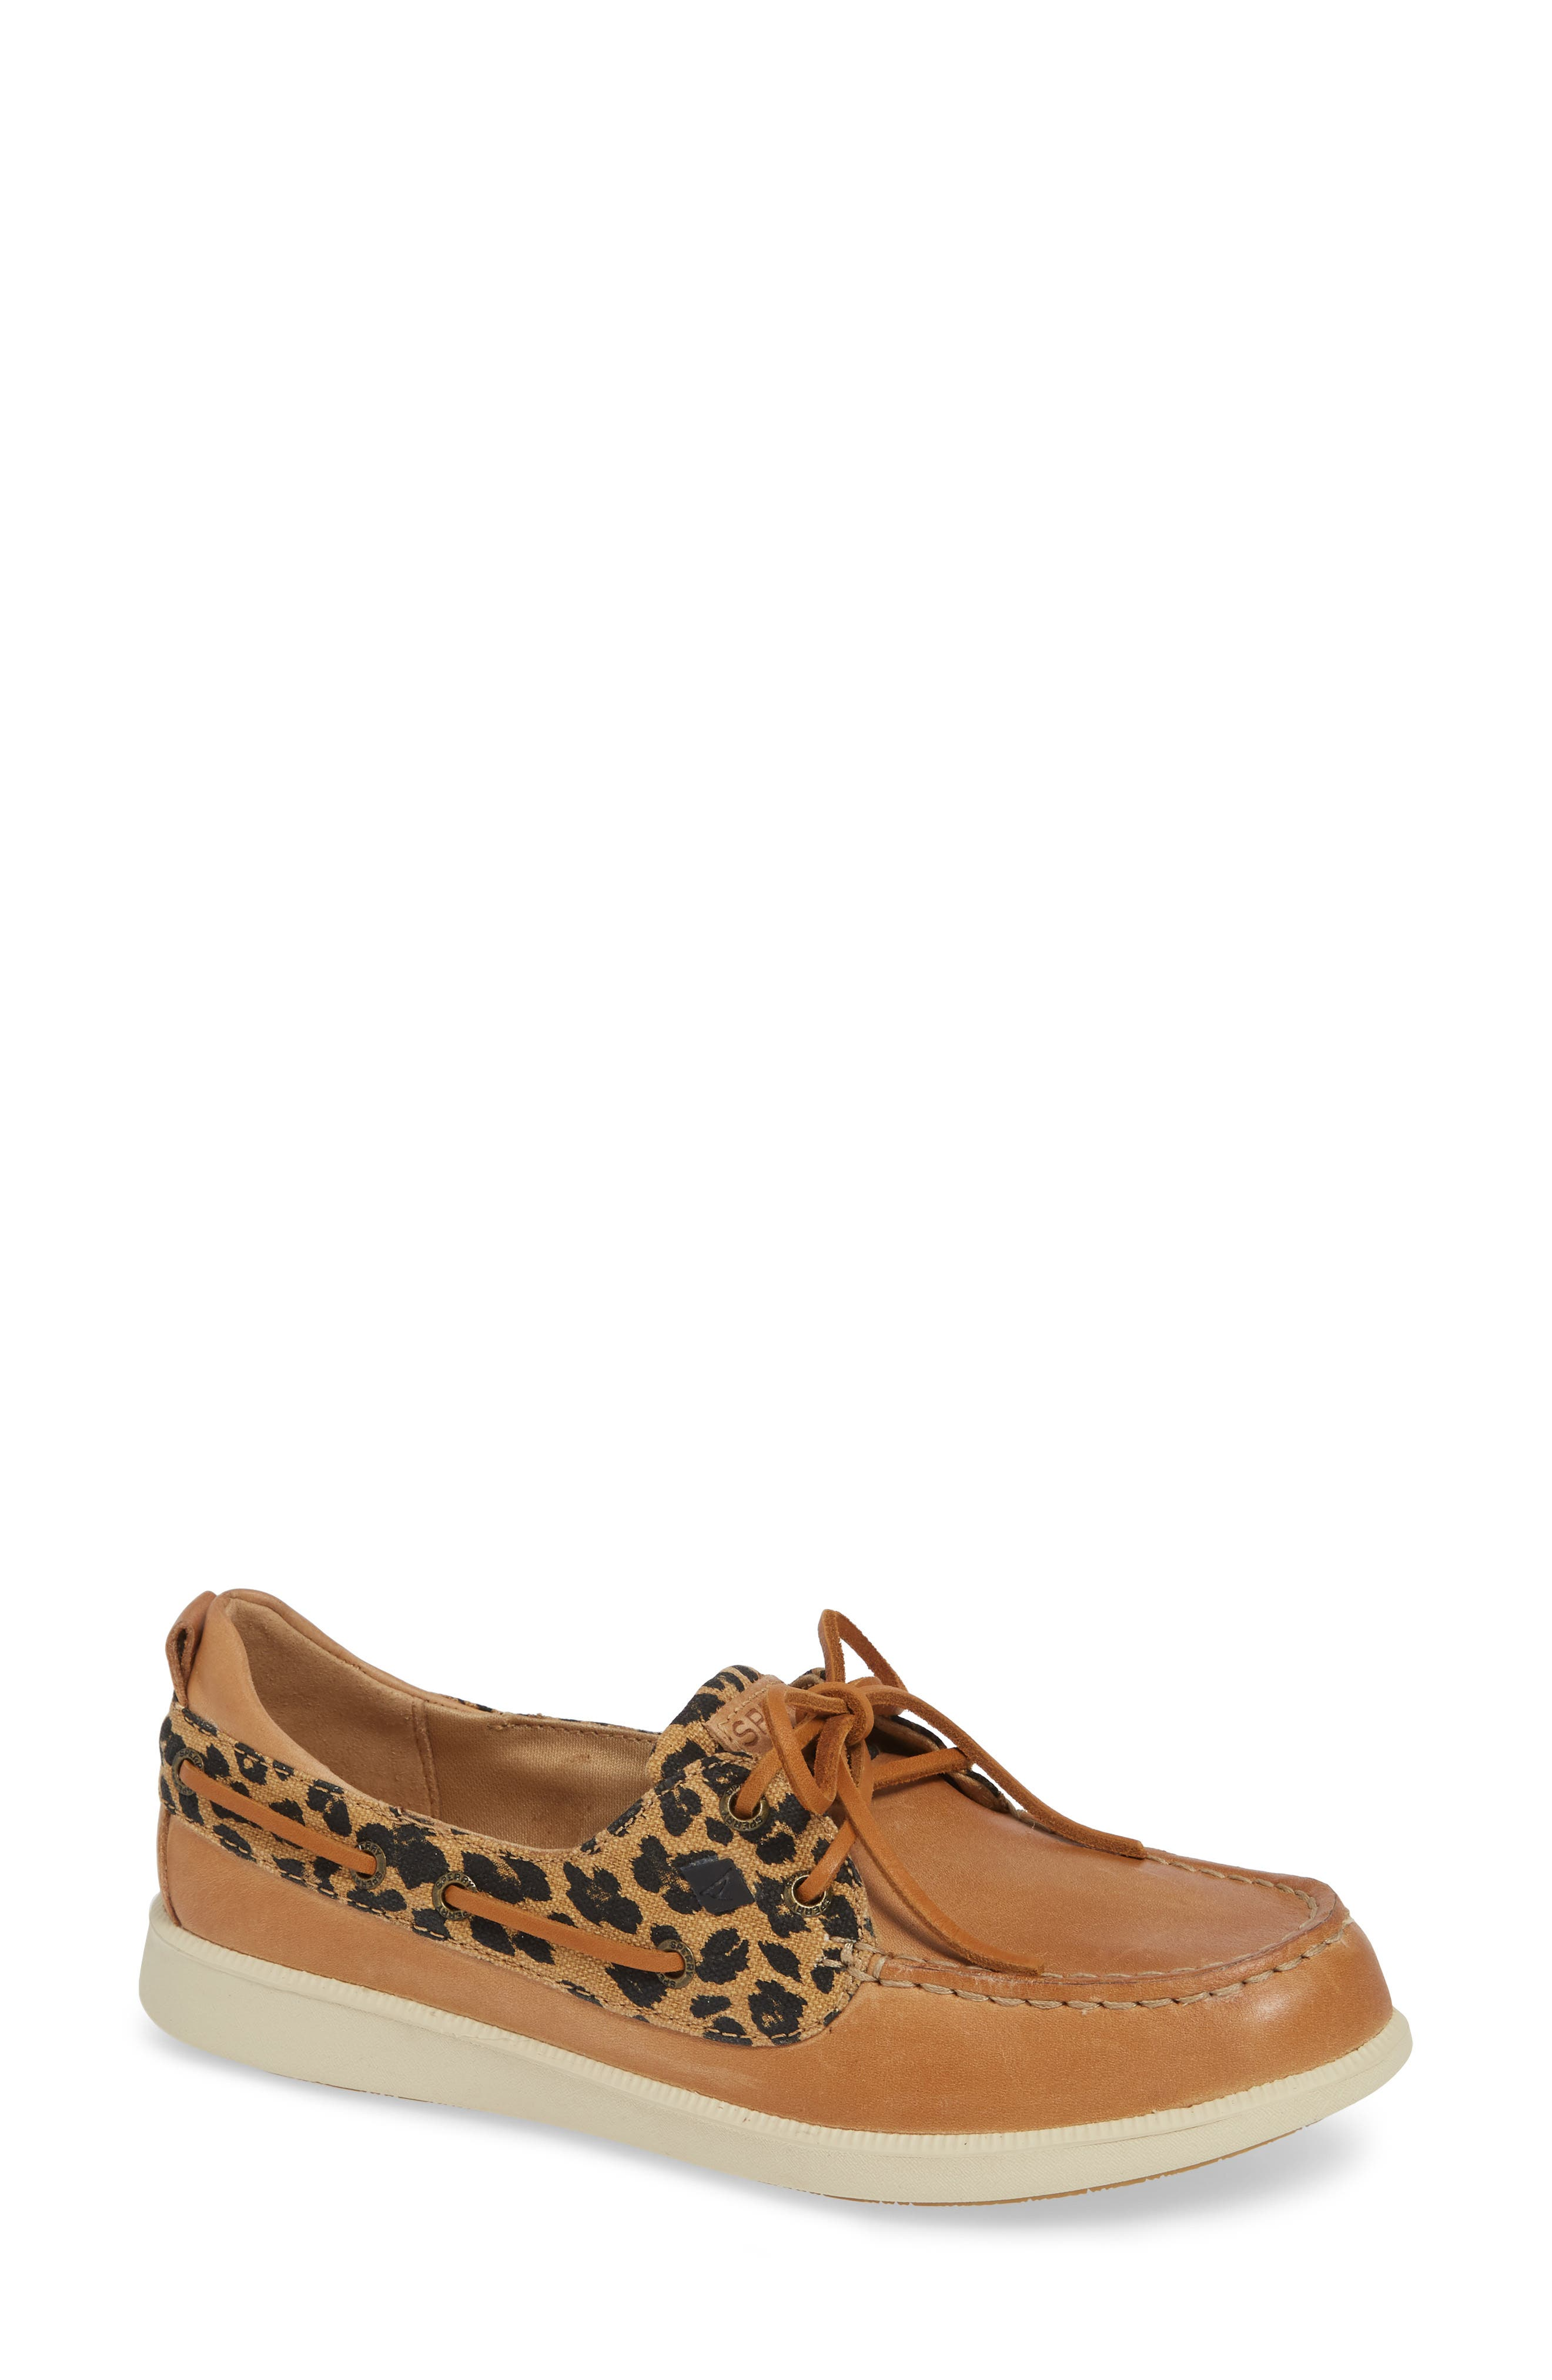 Oasis Boat Shoe in Tan Suede/ Leather